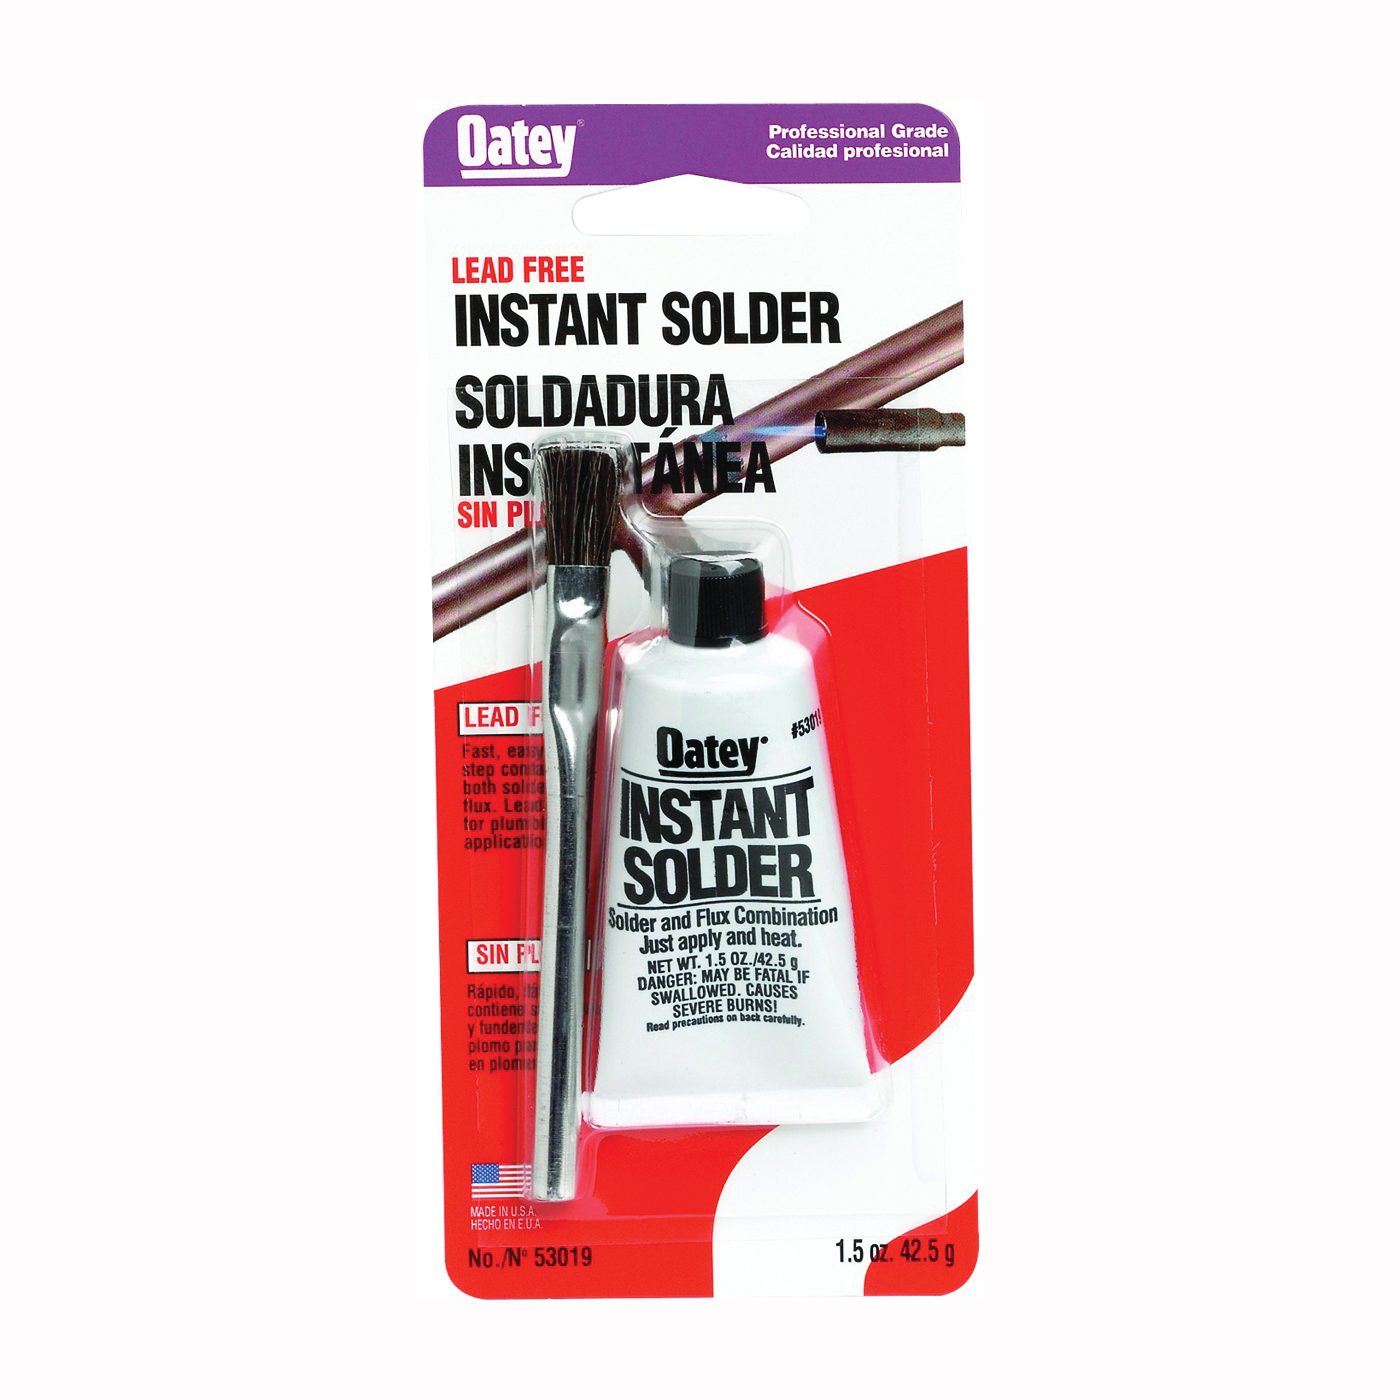 Picture of Oatey 53019 Instant Solder, 1-1/2 oz Package, Paste, Gray, 420 to 455 deg F Melting Point